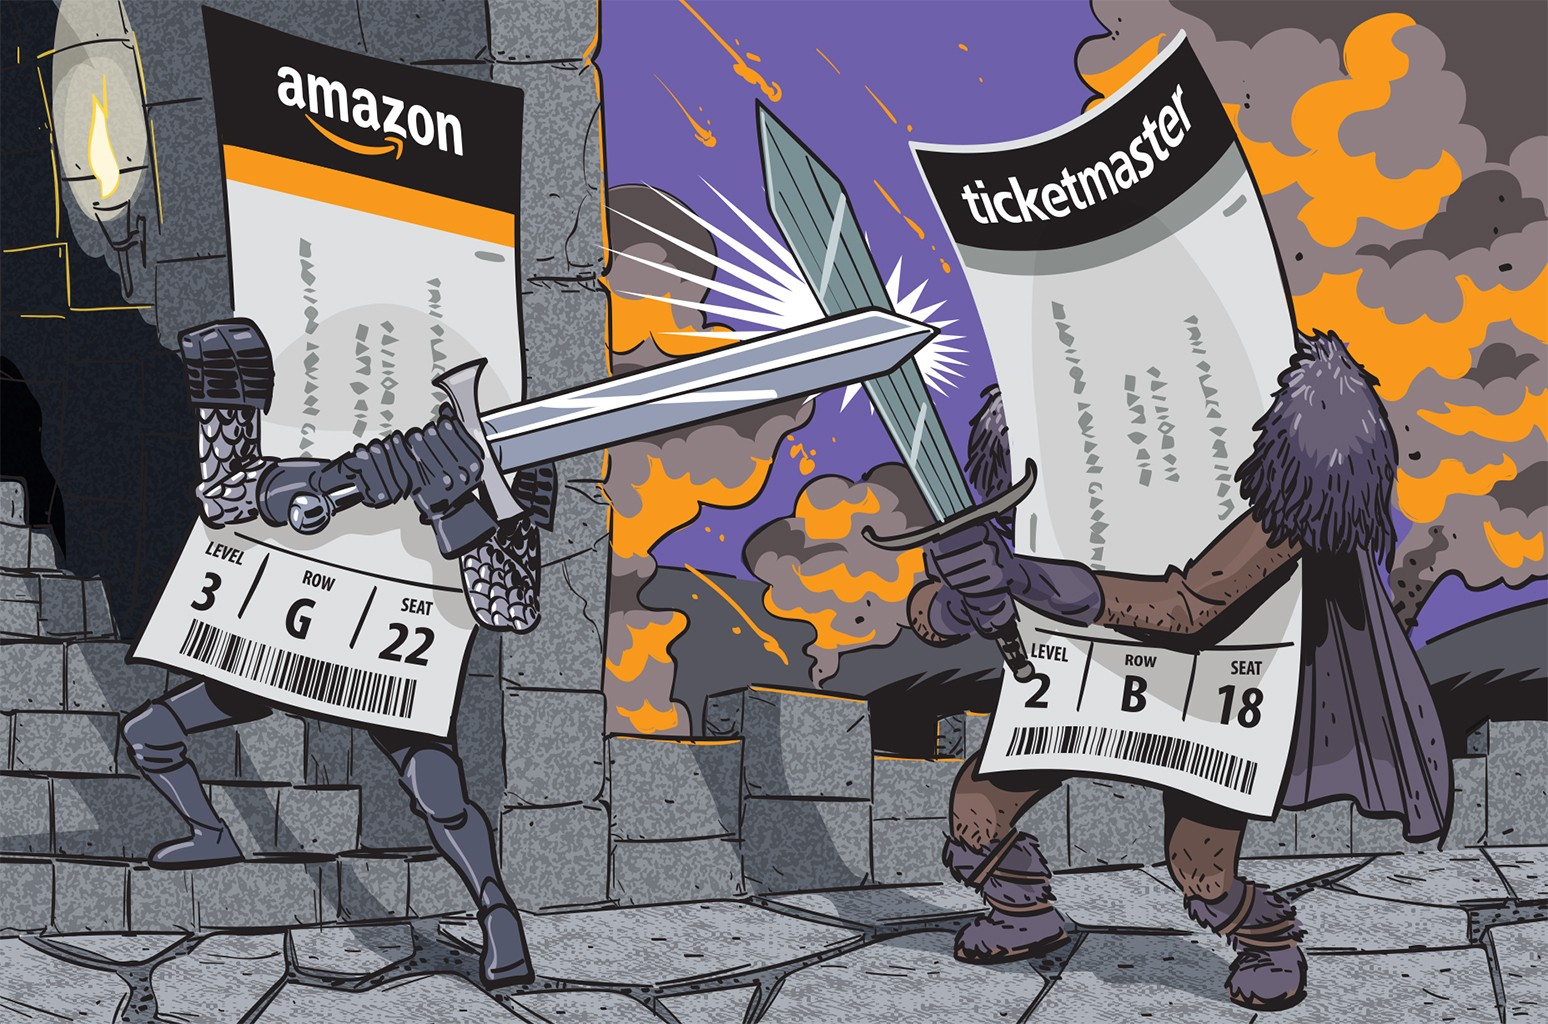 Amazon vs Ticketmaster